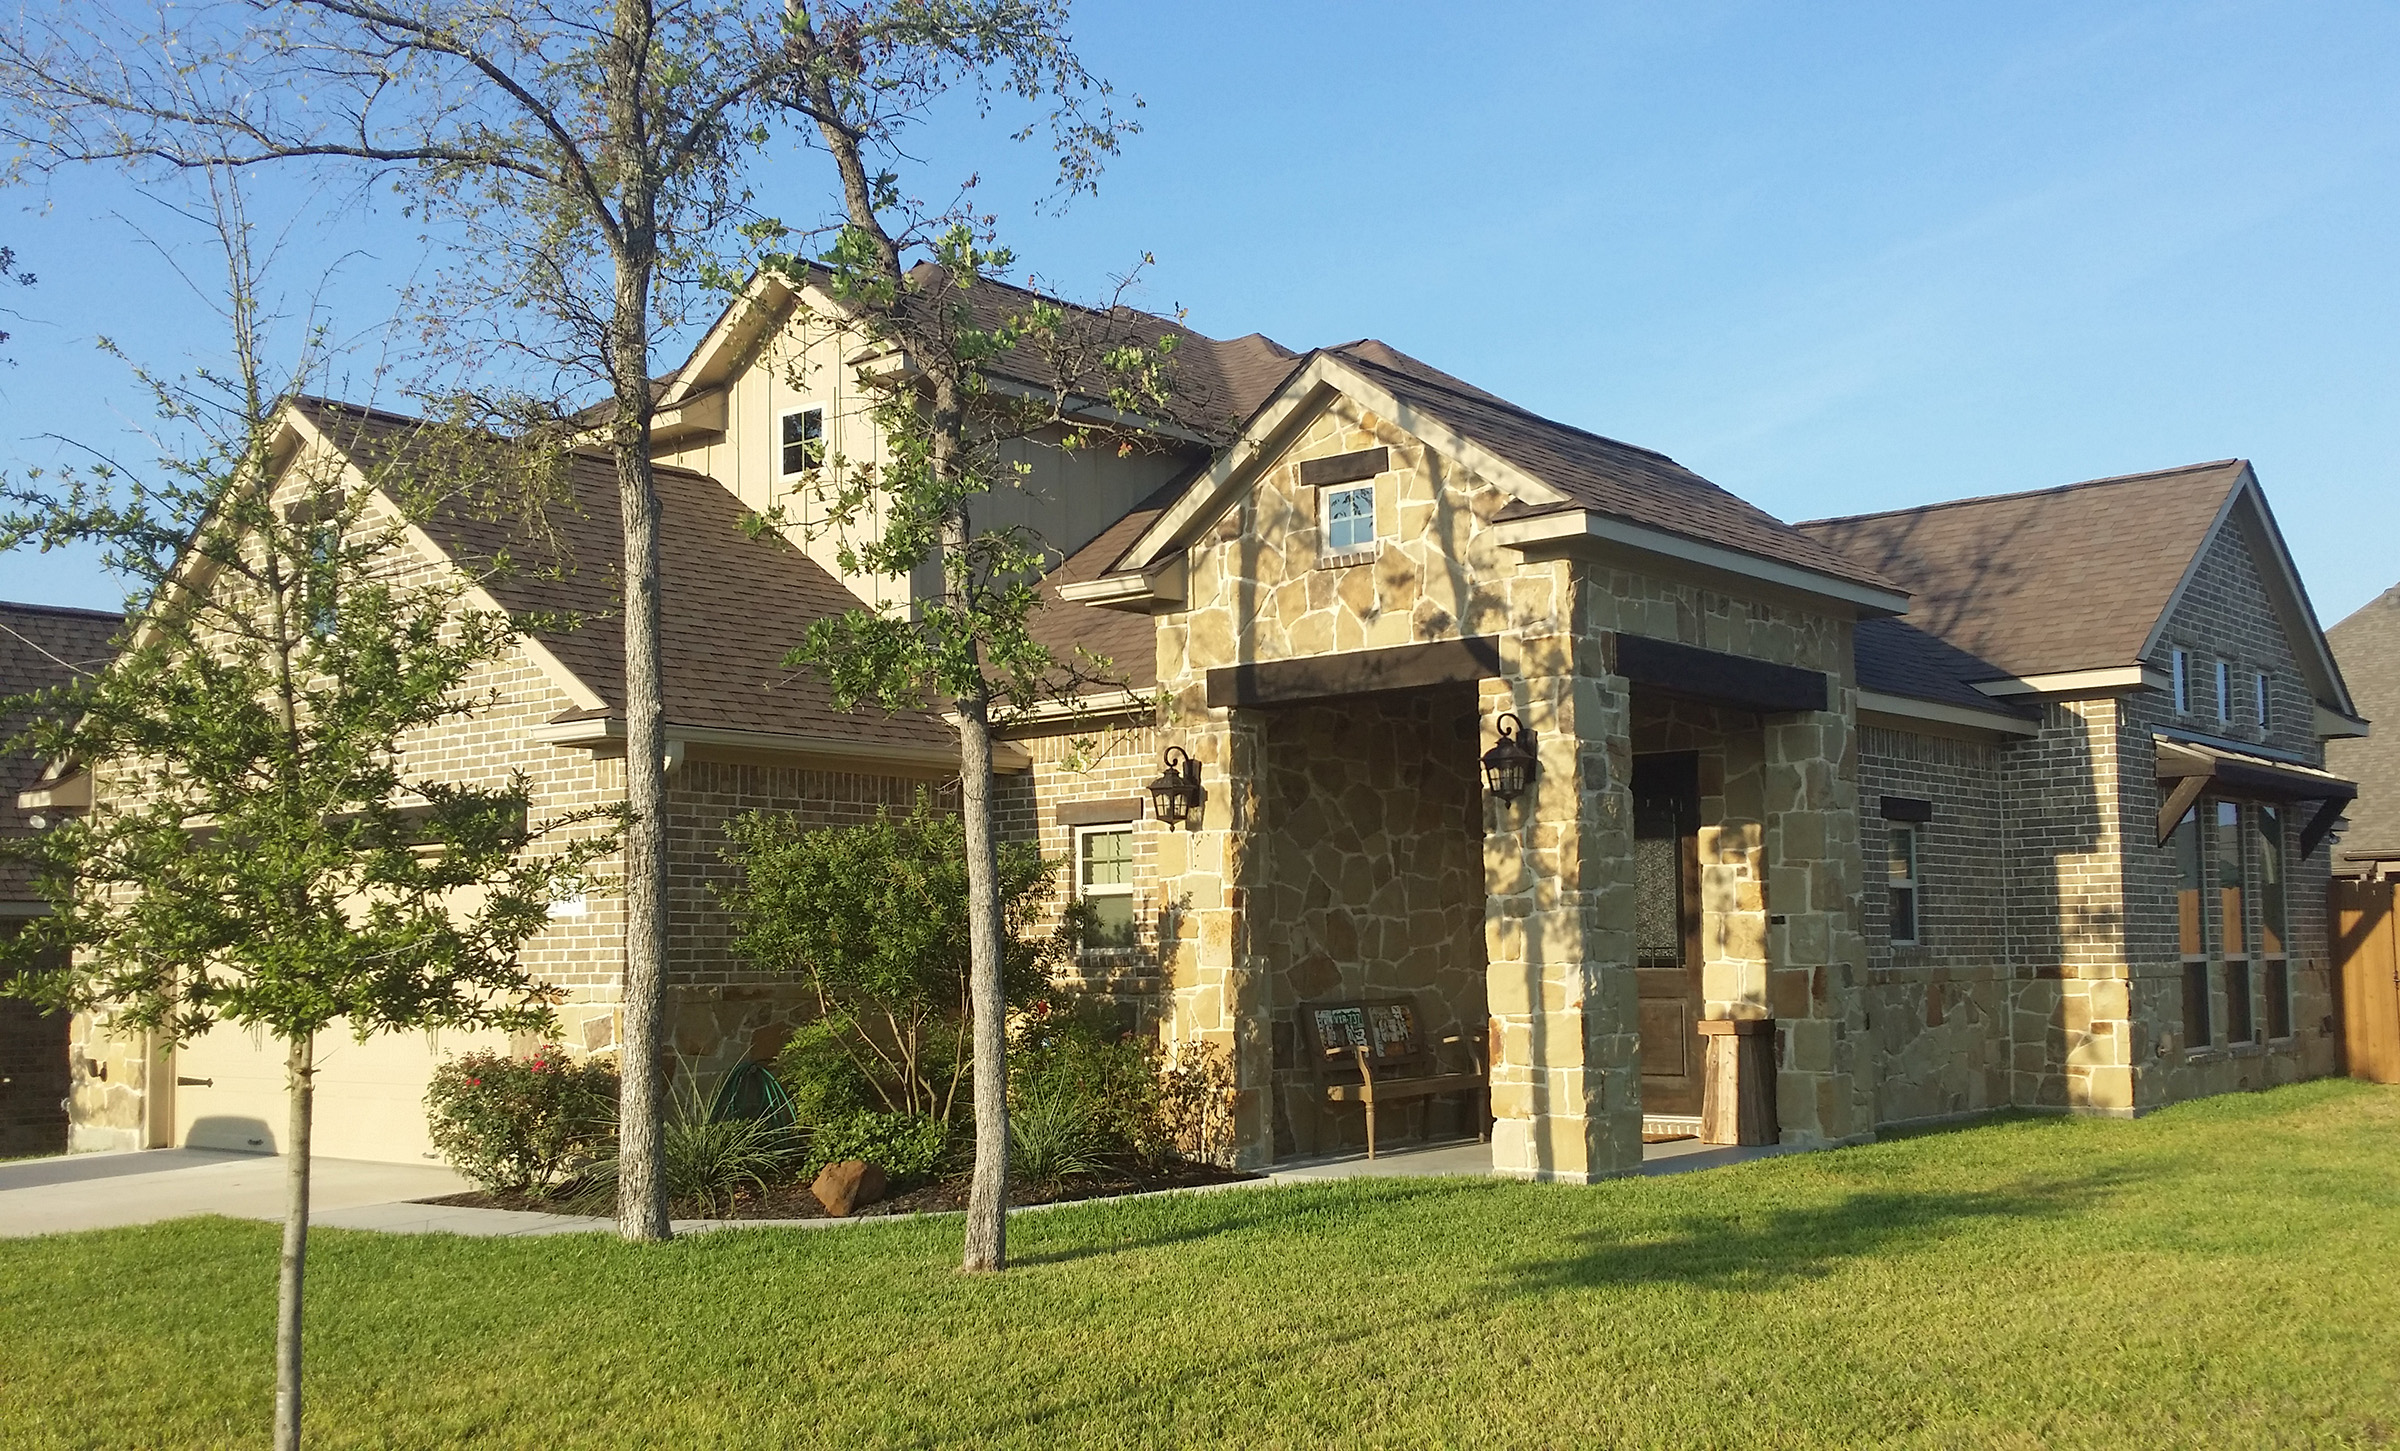 3 Bed Hill Country With Vaulted Great Room 70700JR 1st